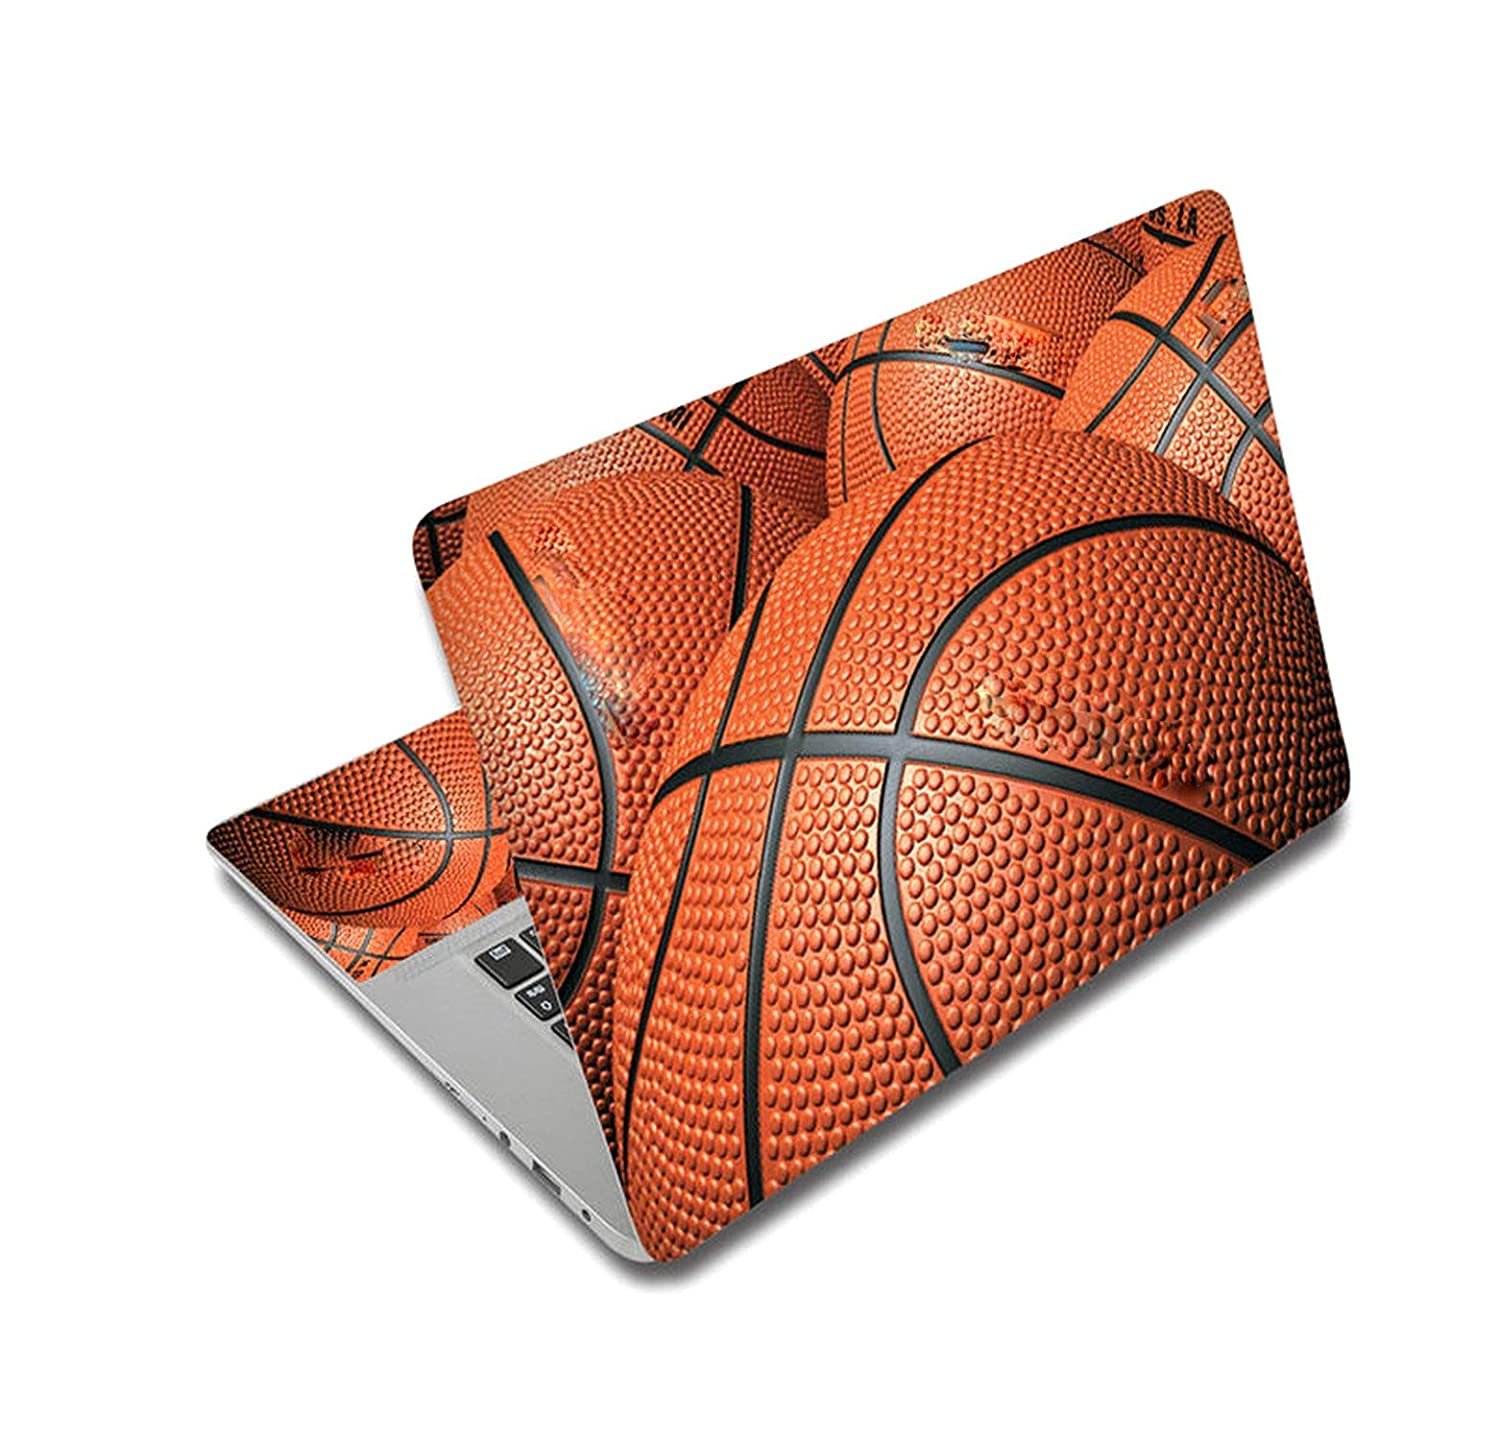 Football Laptop Sticker Basketball Notebook Skin Computer Stickers For Acer/Dell/Asus/Mi Pro/Lenovo,Custom Other Size,Laptop Skin 5